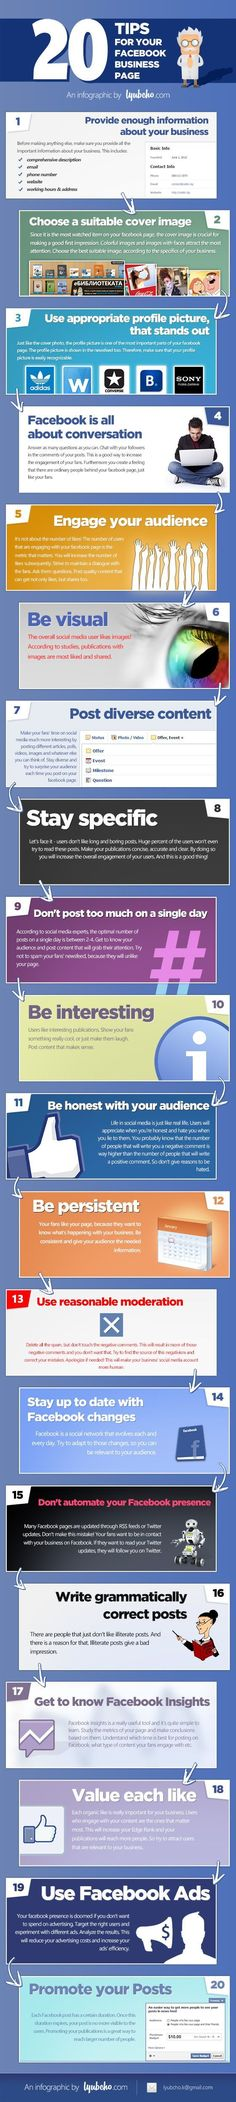 #Infographic: 20 Tips for your #Facebook Business Page